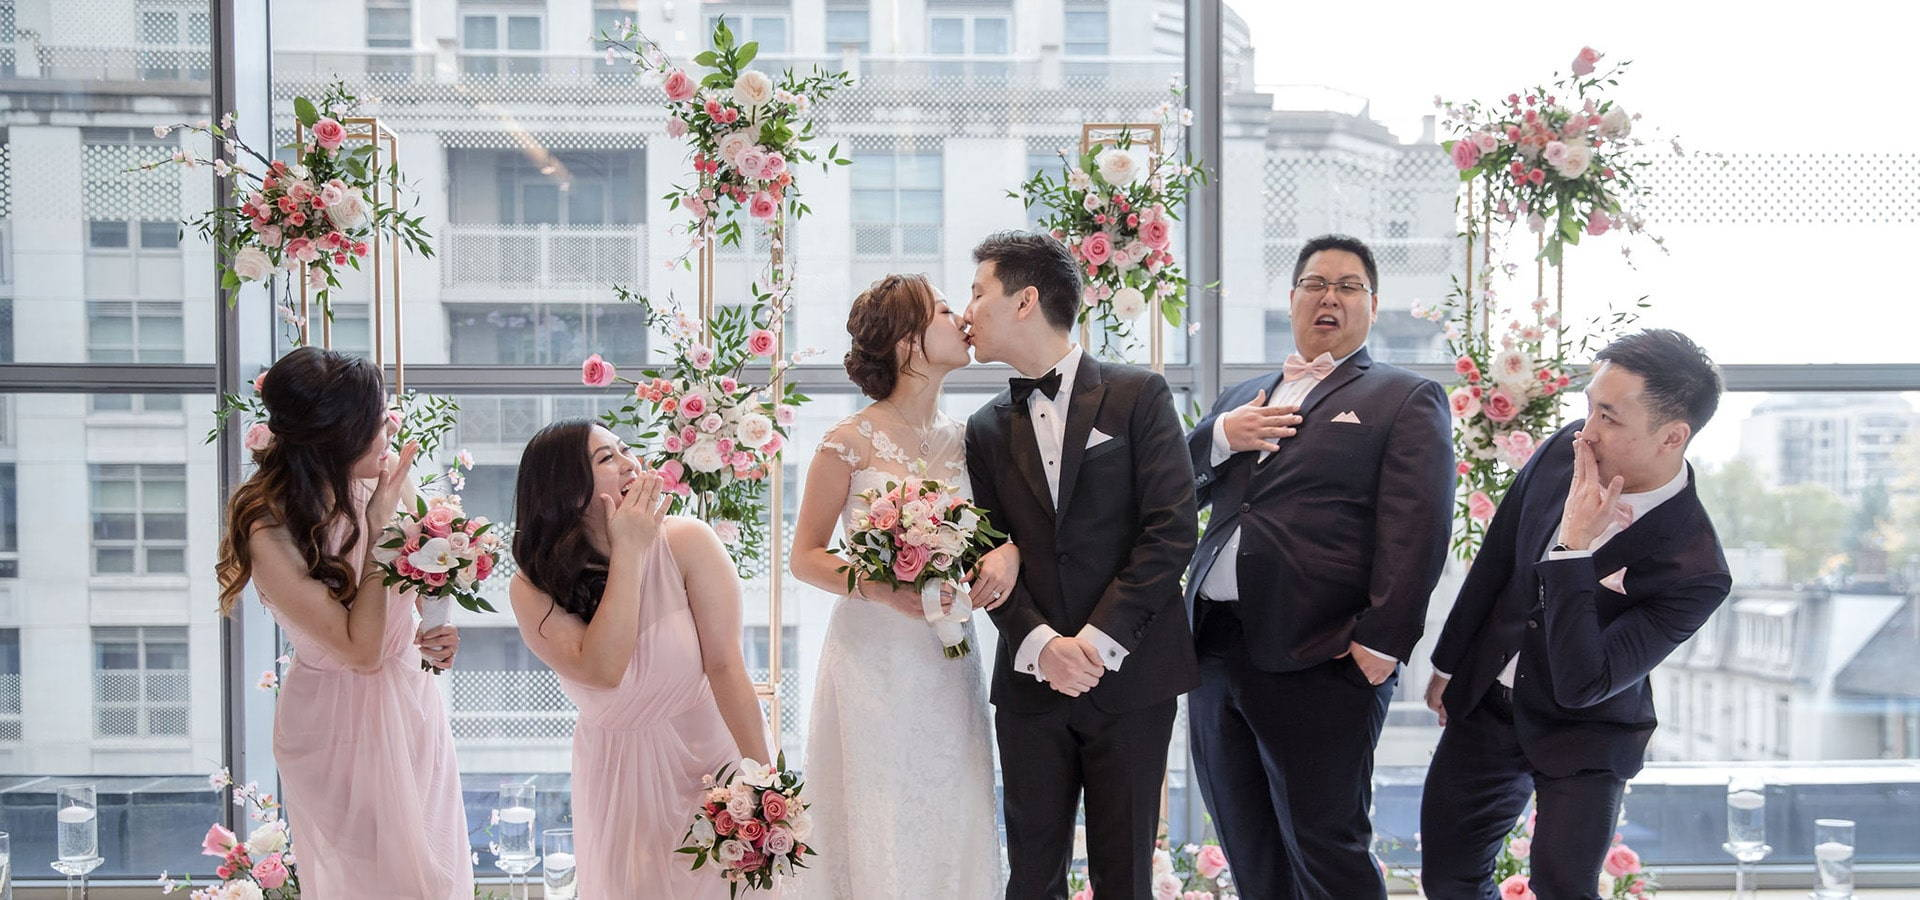 Hero image for Stephanie and Teddy's Magical Wedding at The Four Seasons